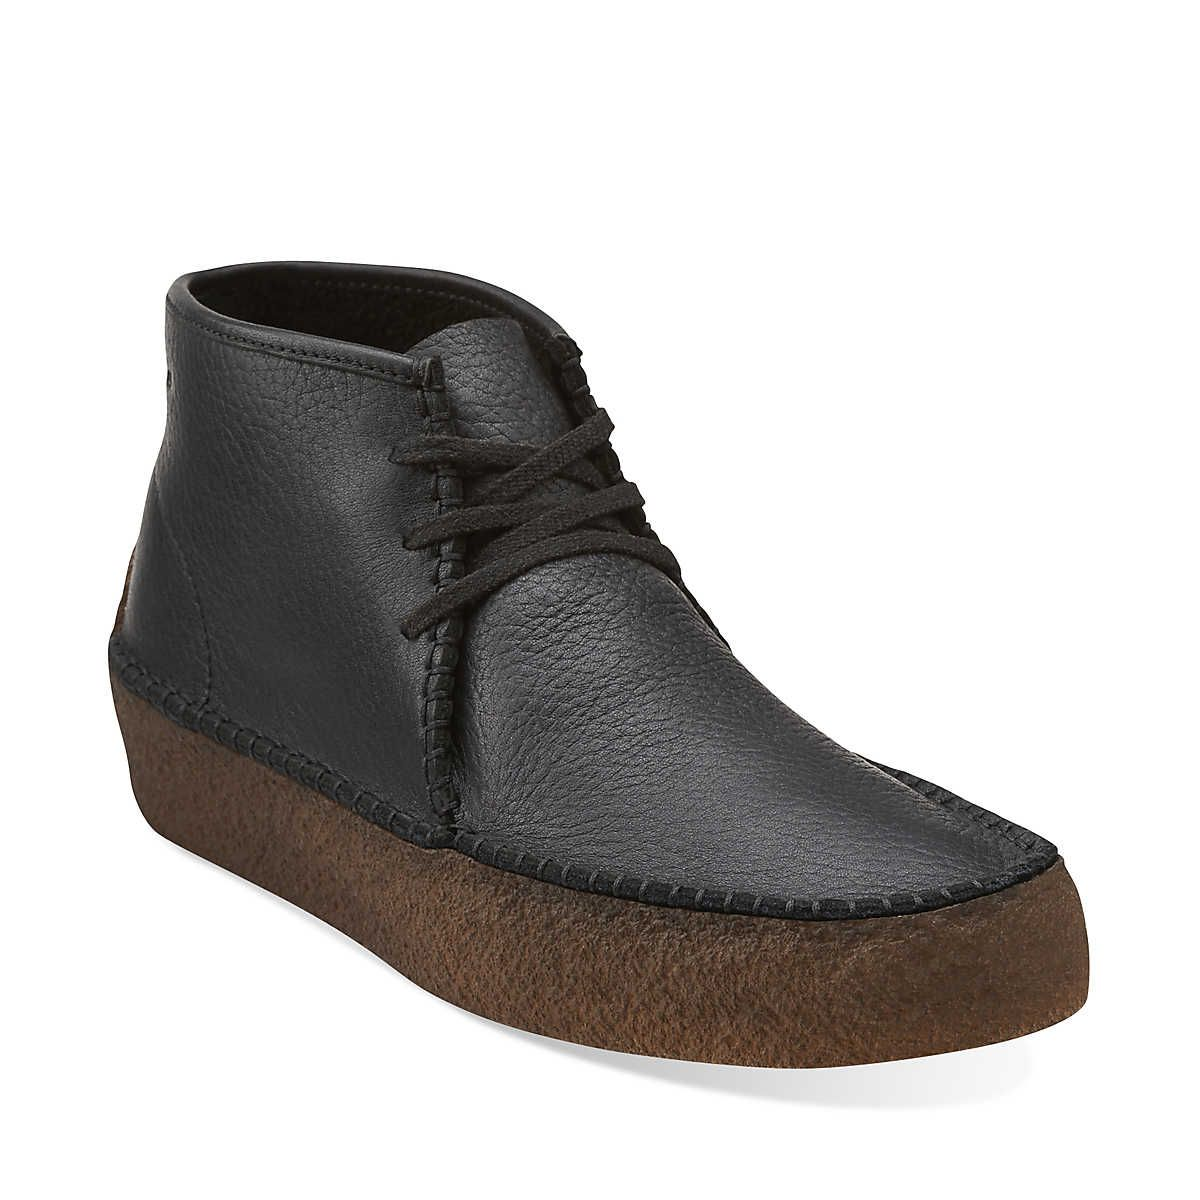 Clarks Originals Wallabee Ridge Www Imgkid Com The